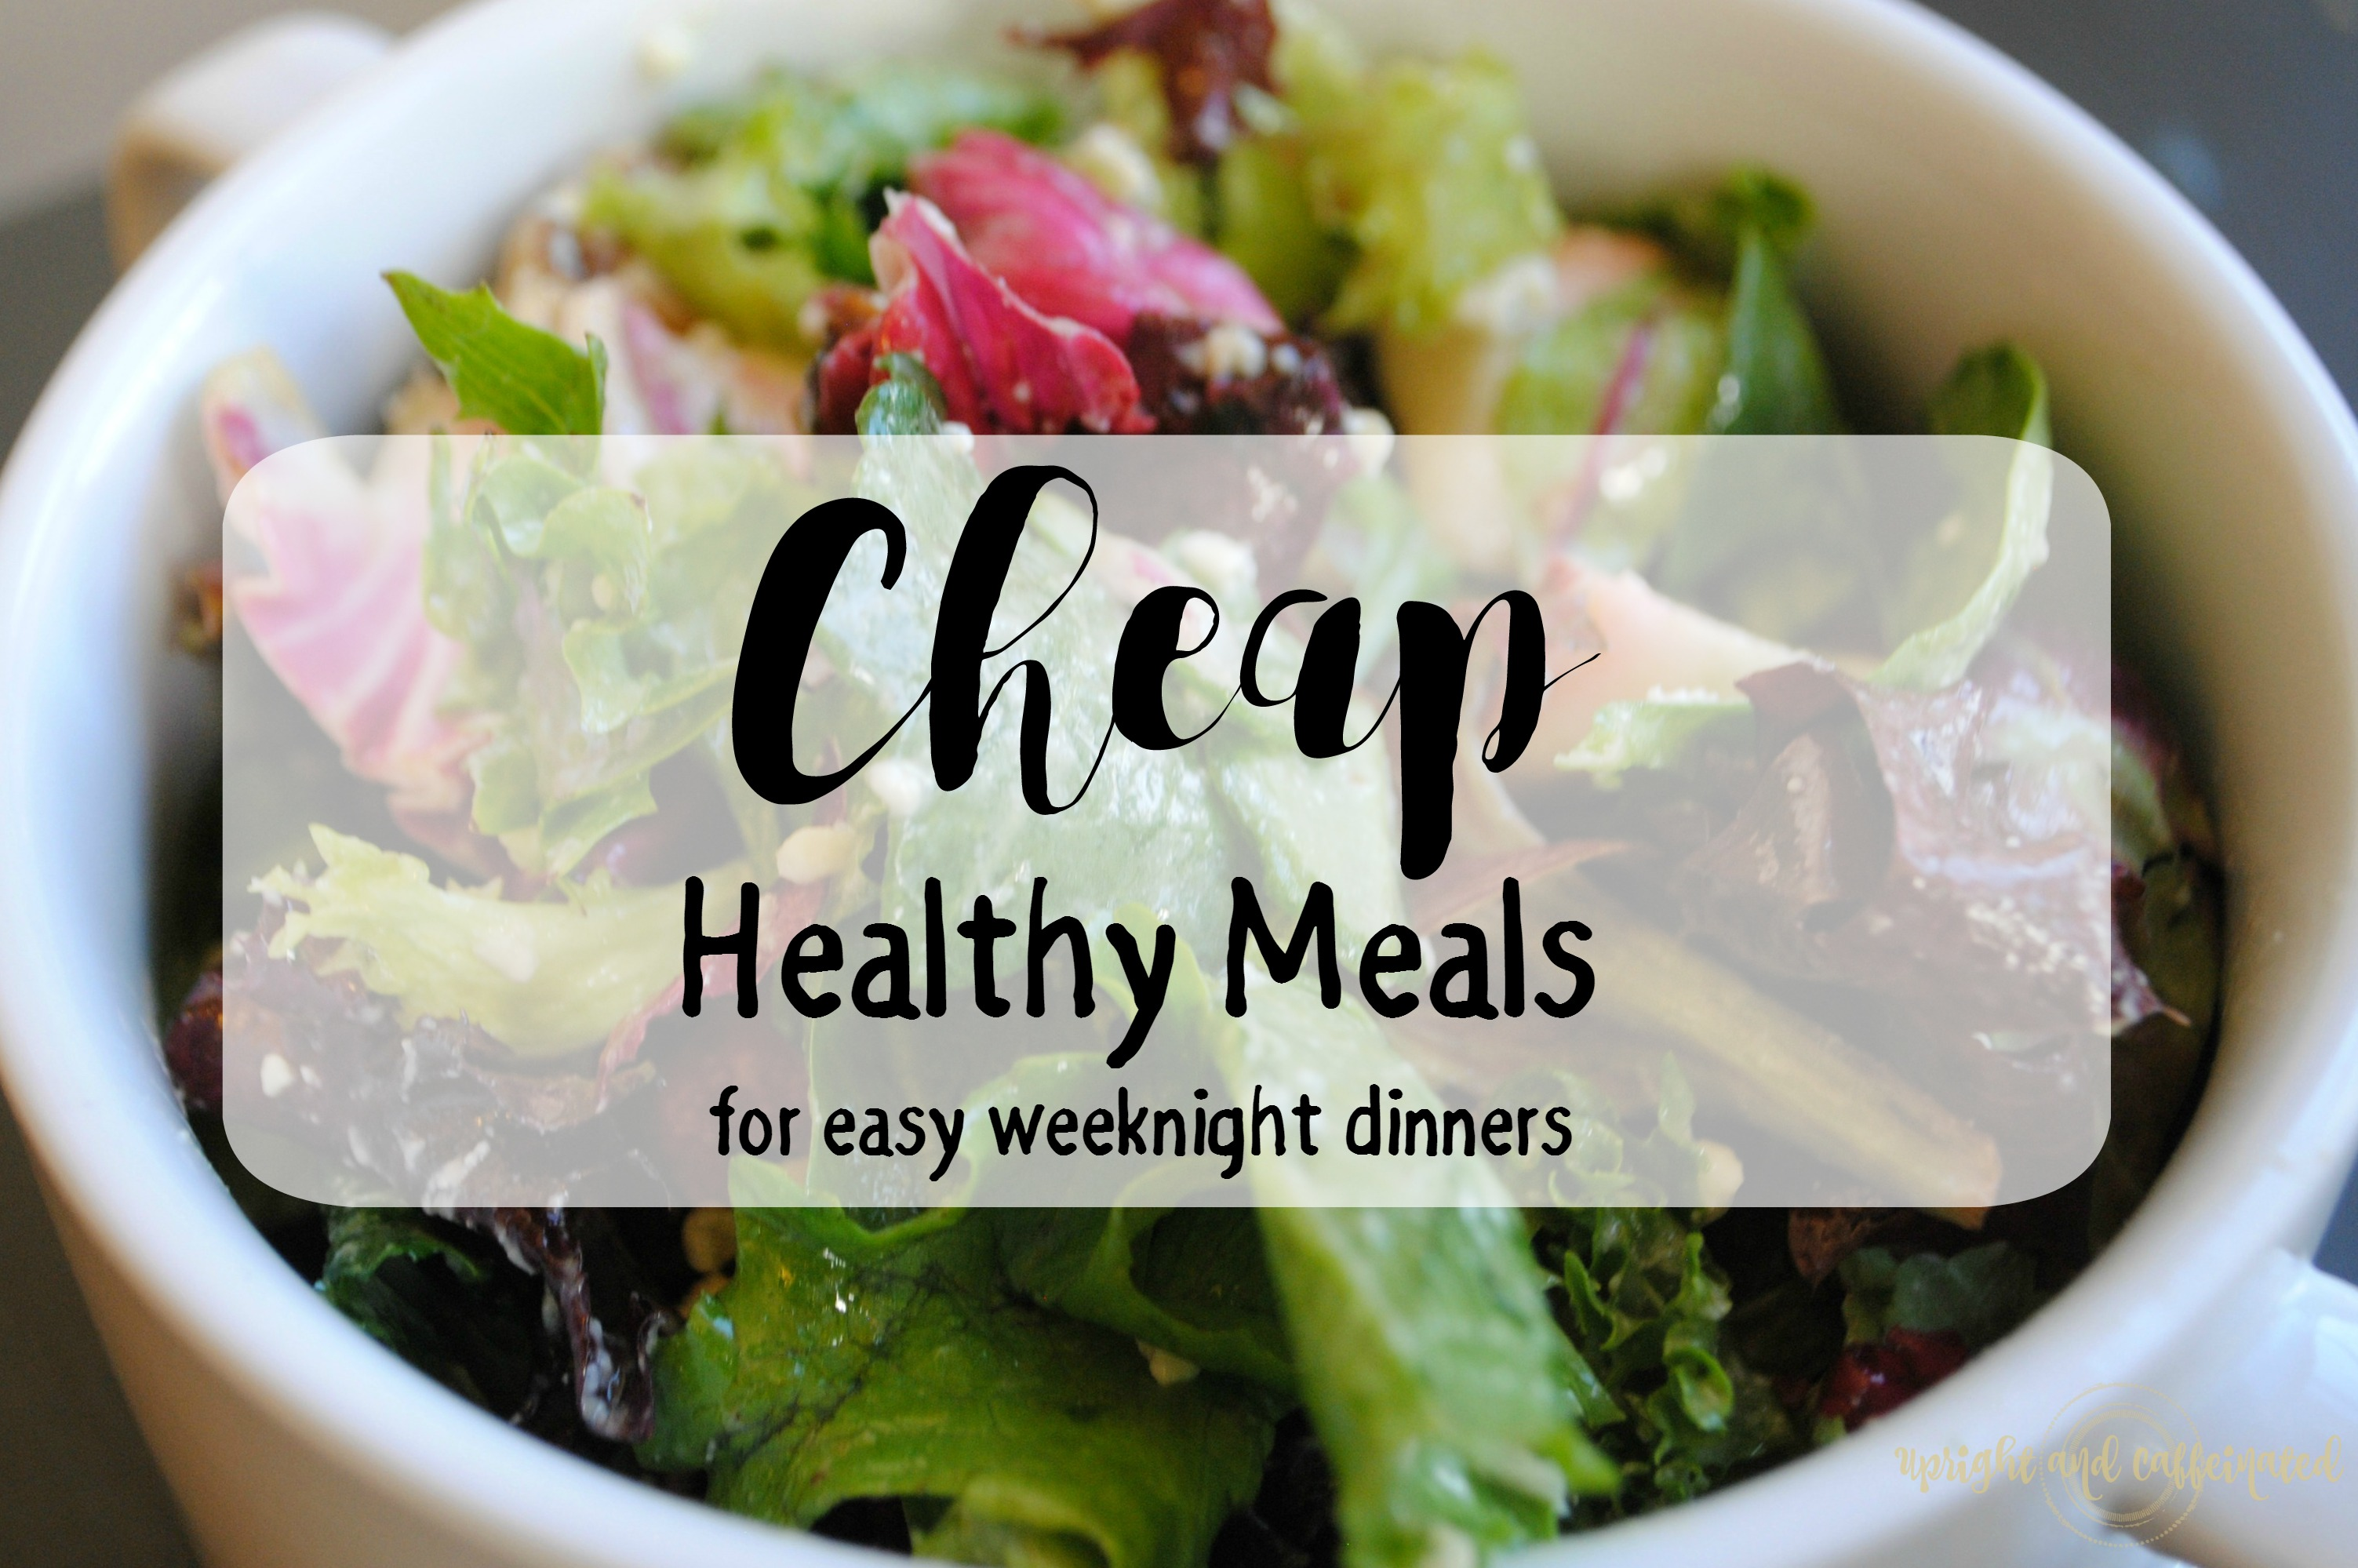 Cheap Healthy Meals for Easy Weeknight Dinners. Upright and Caffeinated